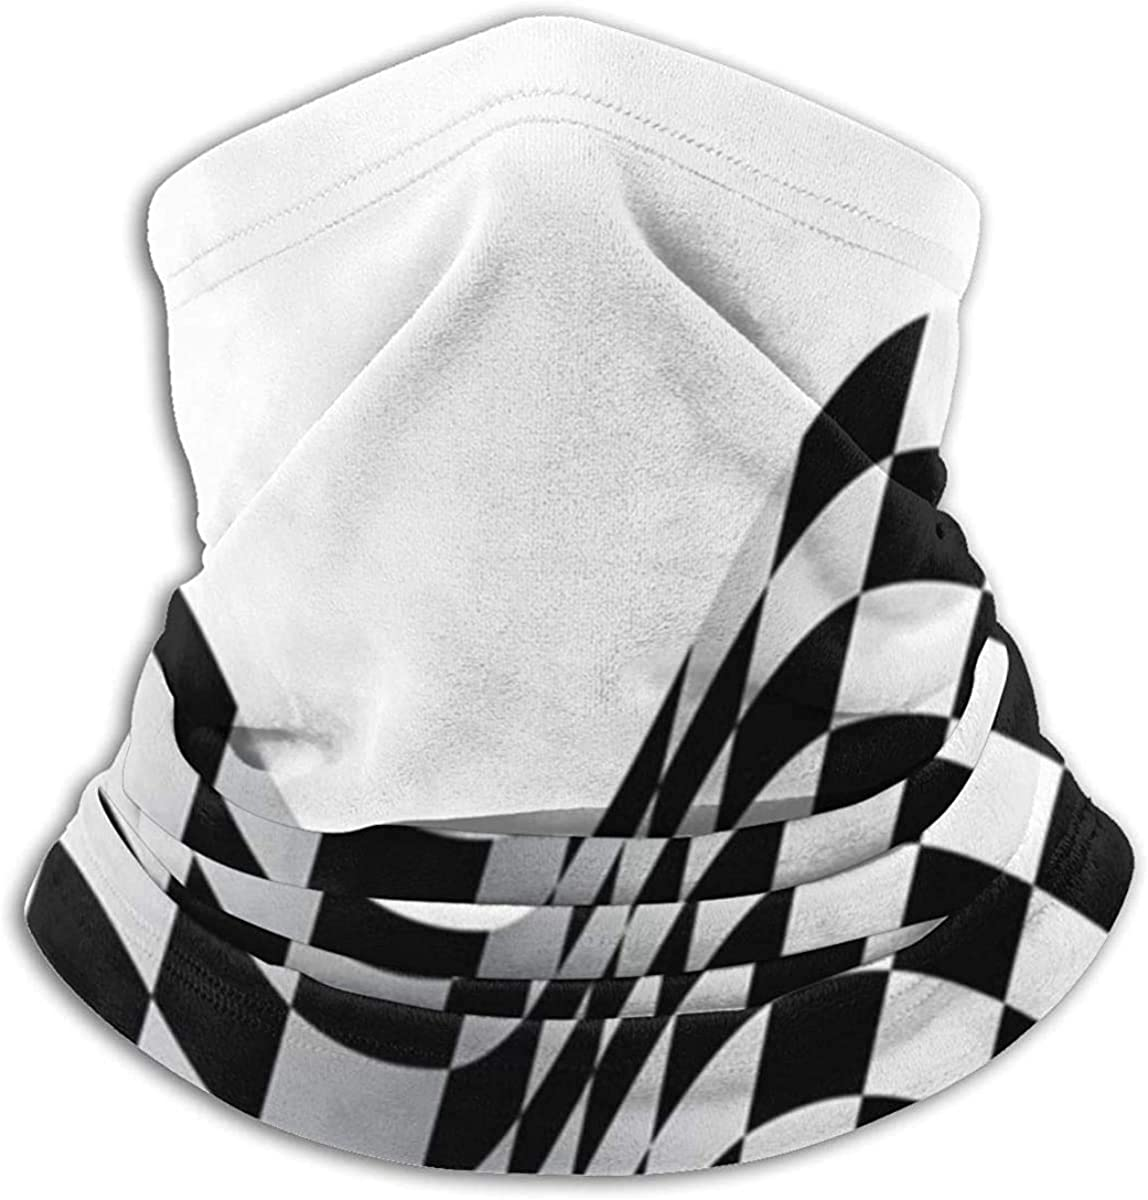 Checkered Race Flag Technology Neck Warmer Multifunction Scarf Hat Neck Gaiter Neck Cap Bala Windproof Neck Heating Wrap Outdoor Sports